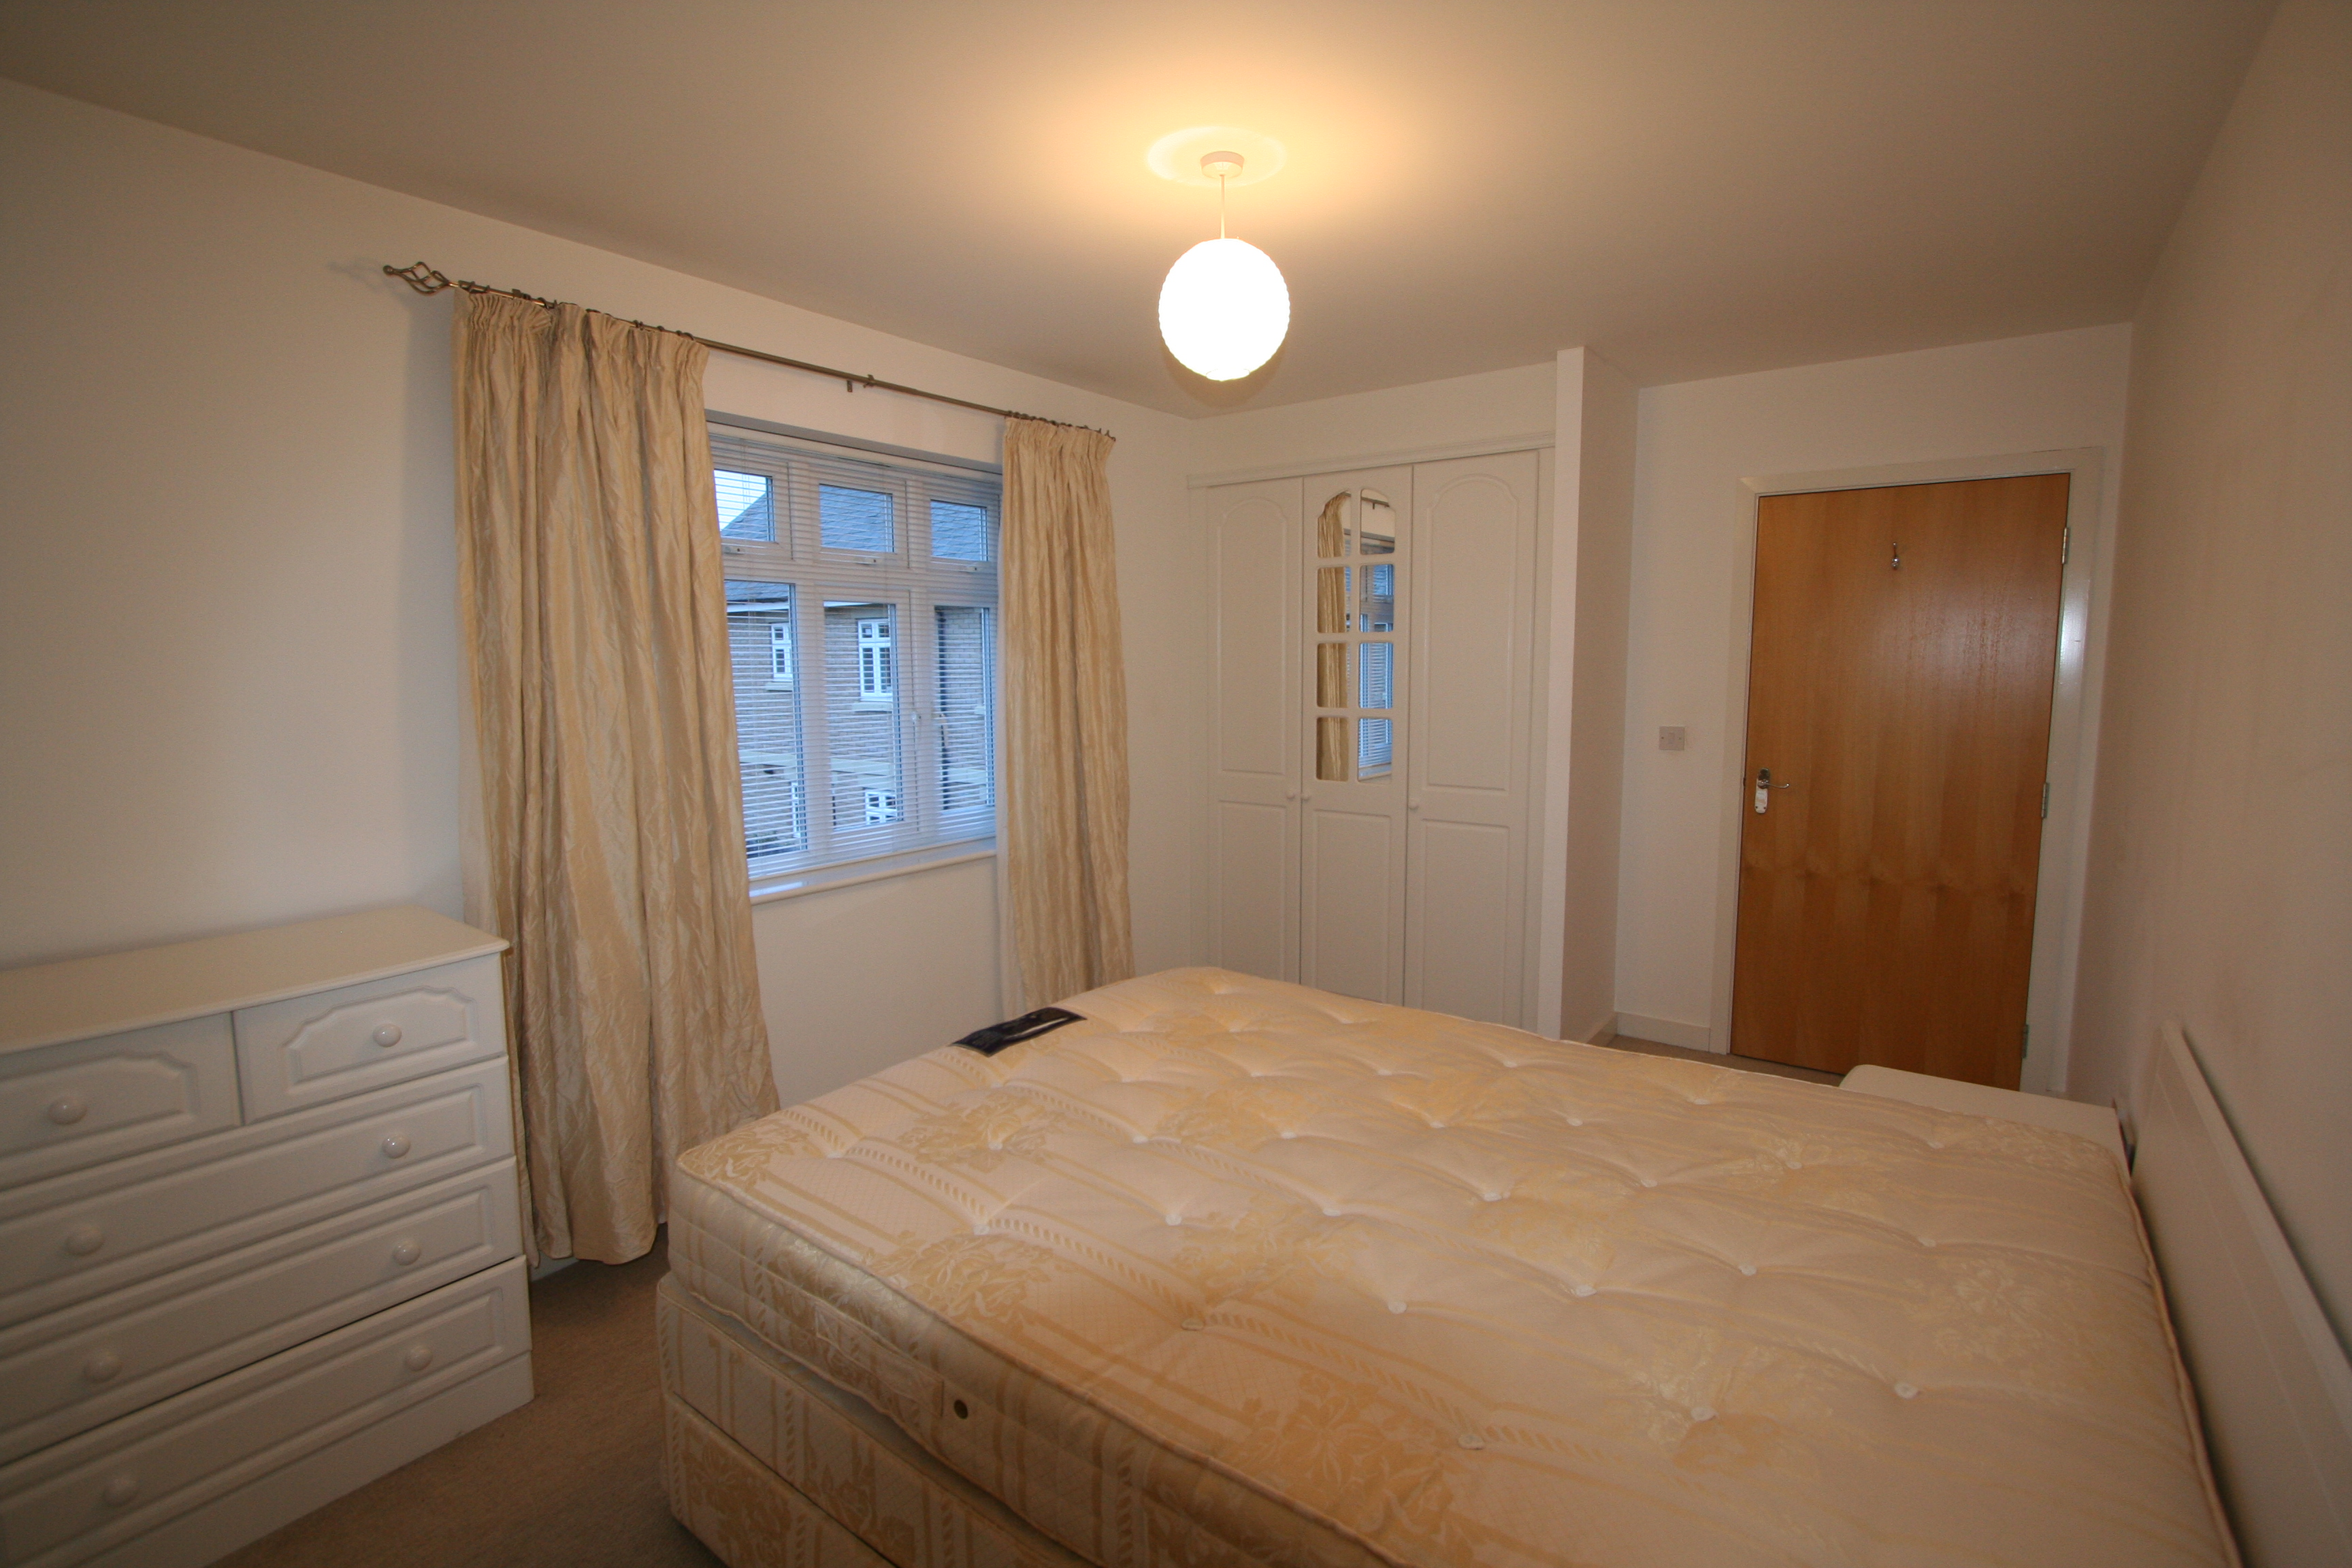 1 Bedroom Apartment To Rent Pearl Close Cambridge Cb4 1qd